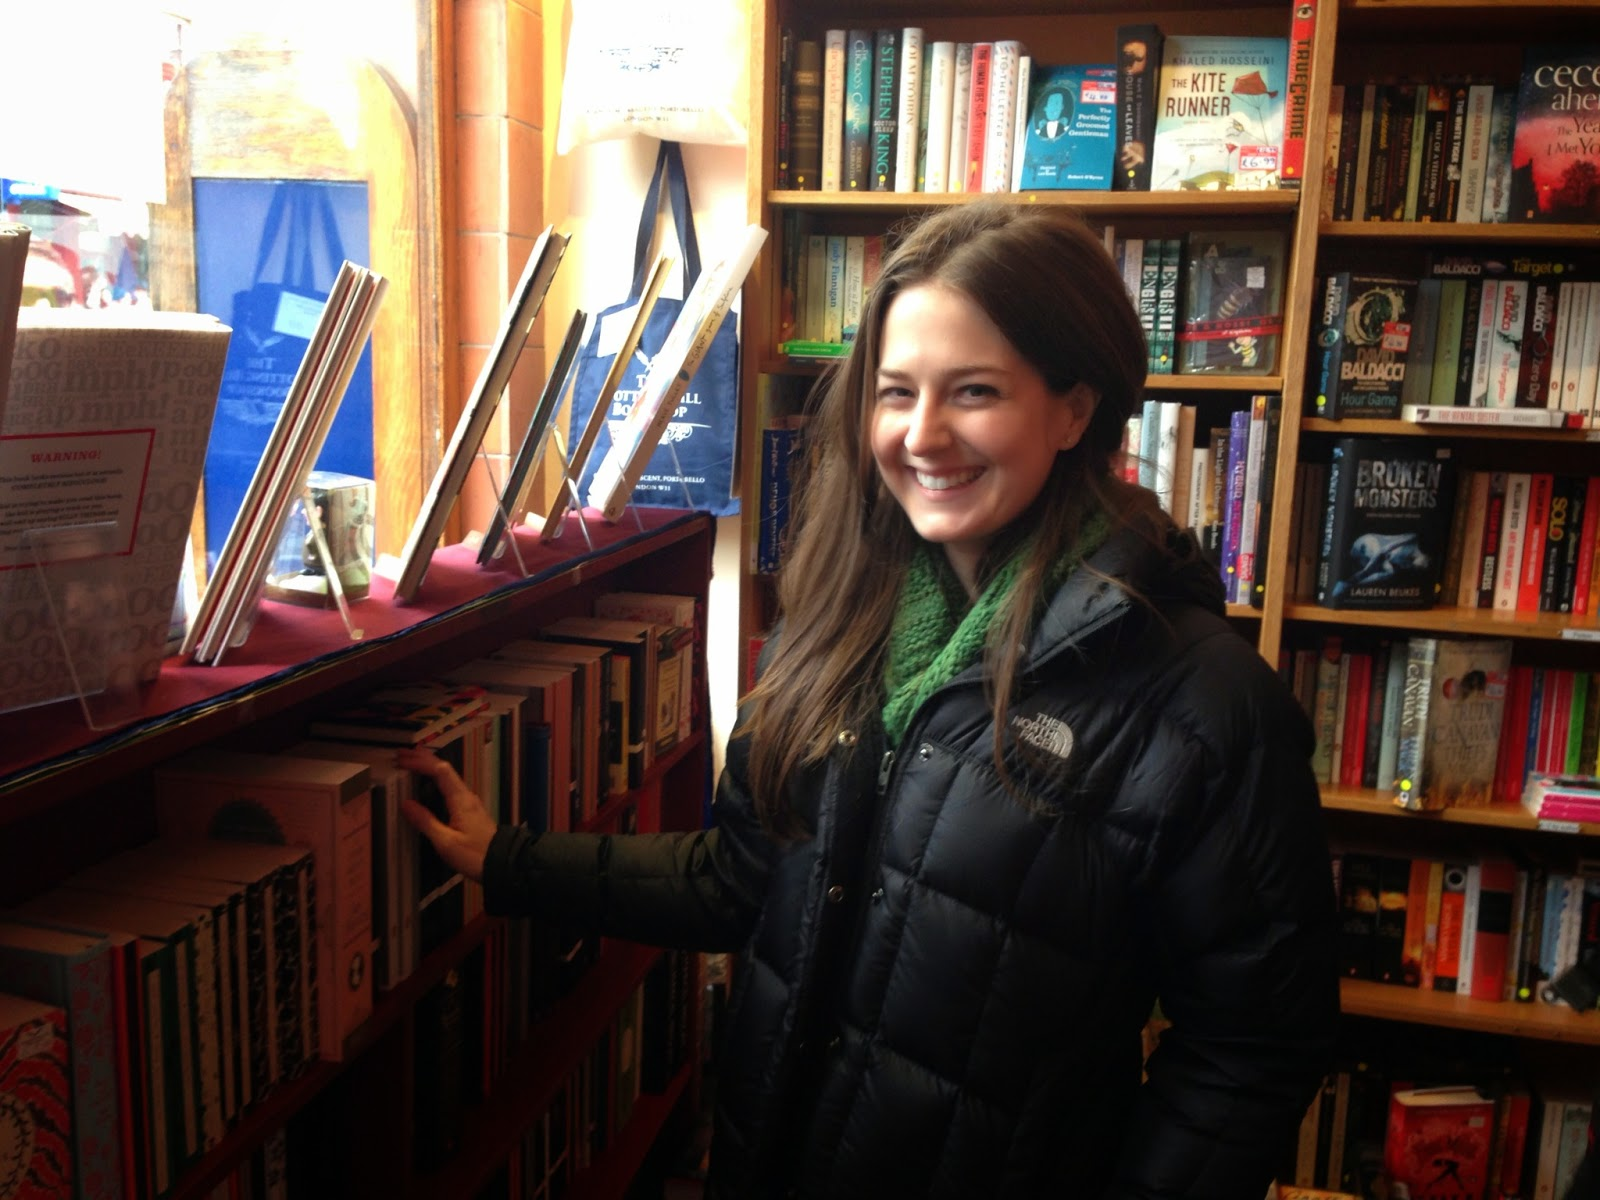 Writer Julie Pennell at Notting Hill Book Shop in London